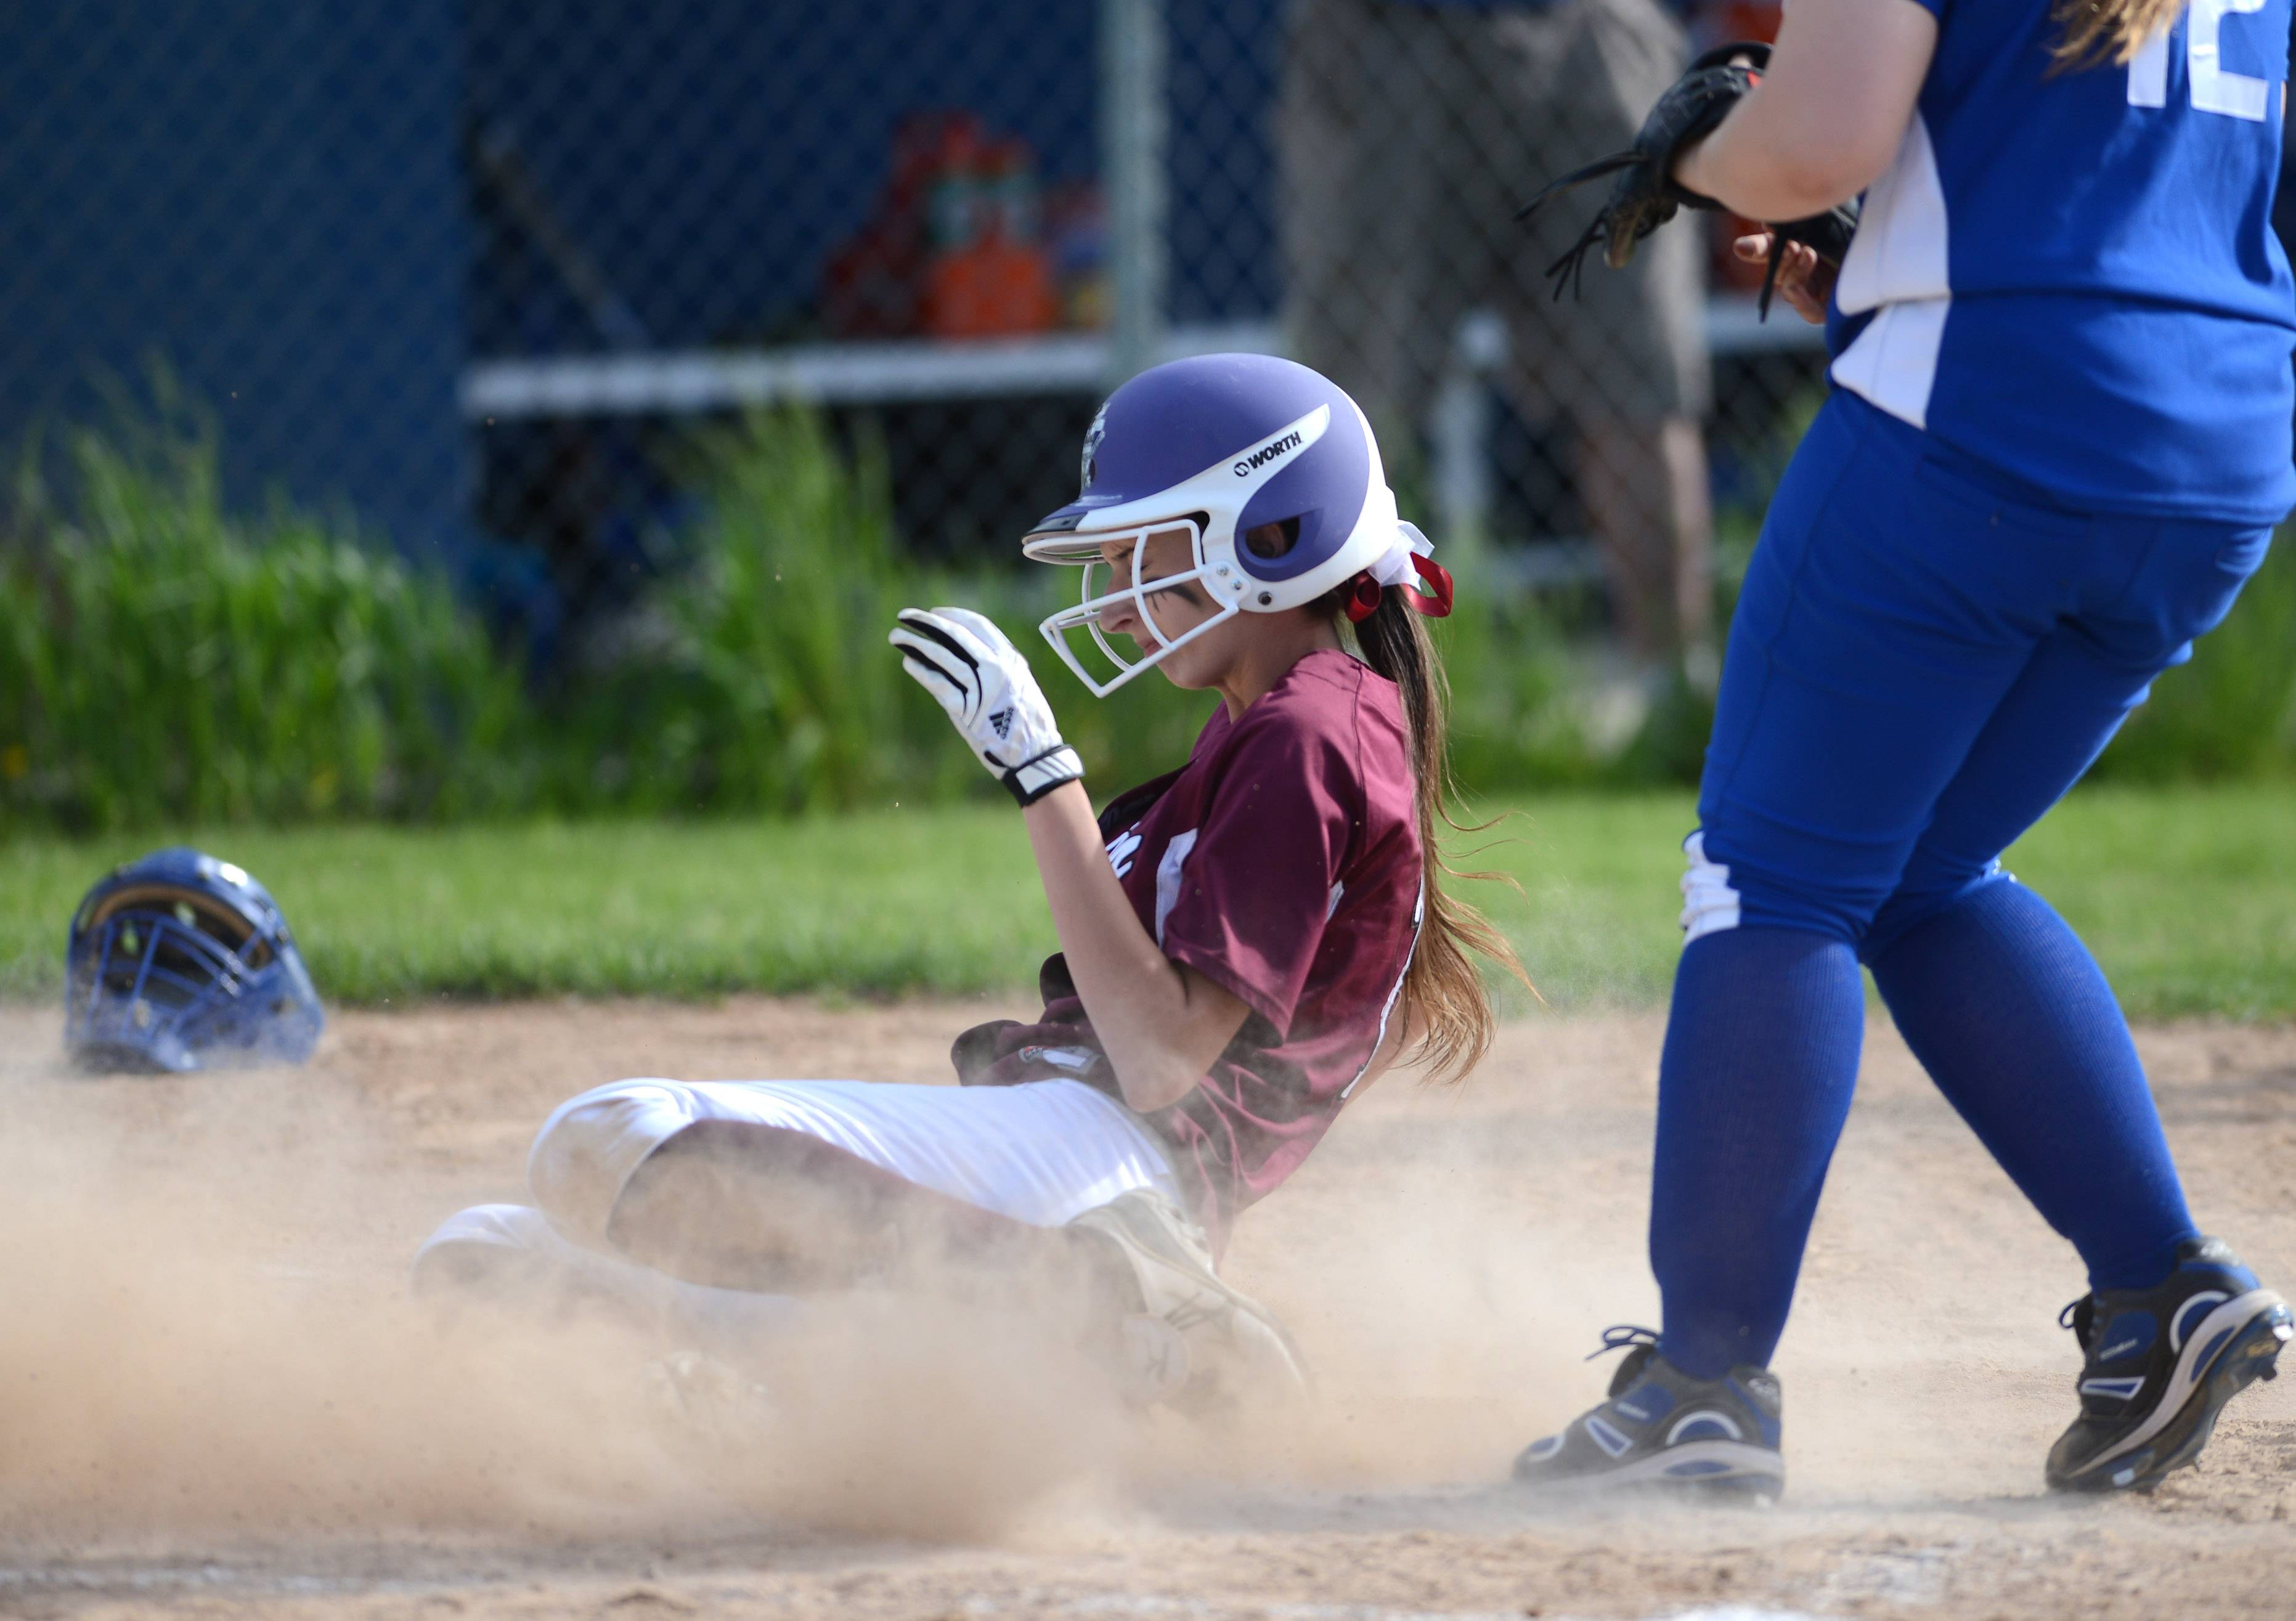 Elgin's Jenna Lombardo (1) slides safely into home on a wild pitch during Thursday's game at Larkin in Elgin.